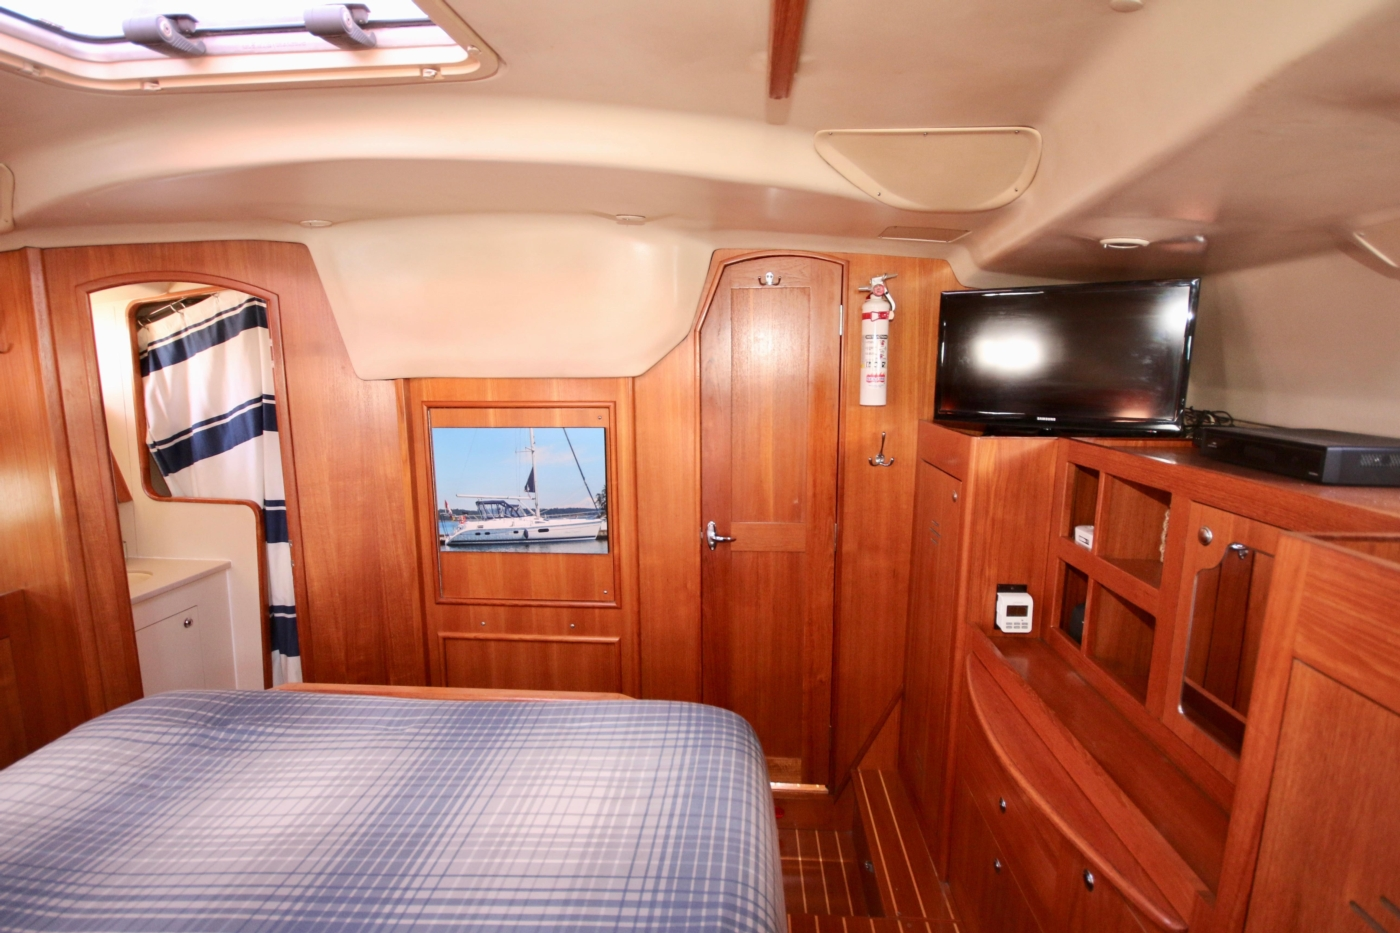 2004 Hunter Passage 420, Master stateroom looking forward